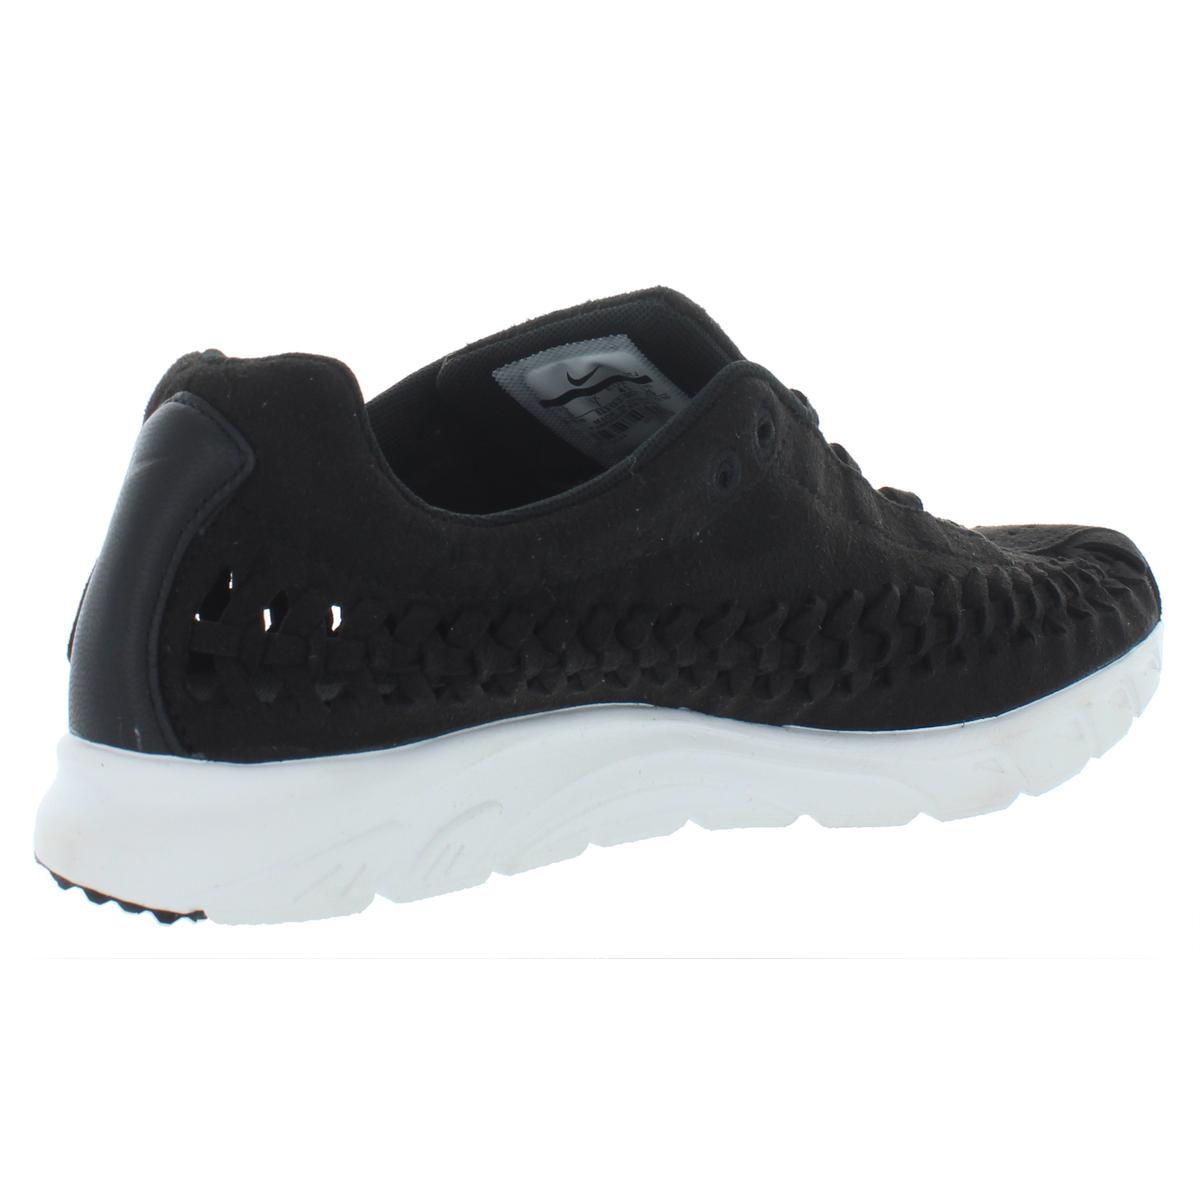 Nike-Mens-Mayfly-Woven-Suede-Woven-Training-Fashion-Sneakers-Shoes-BHFO-2898 thumbnail 7